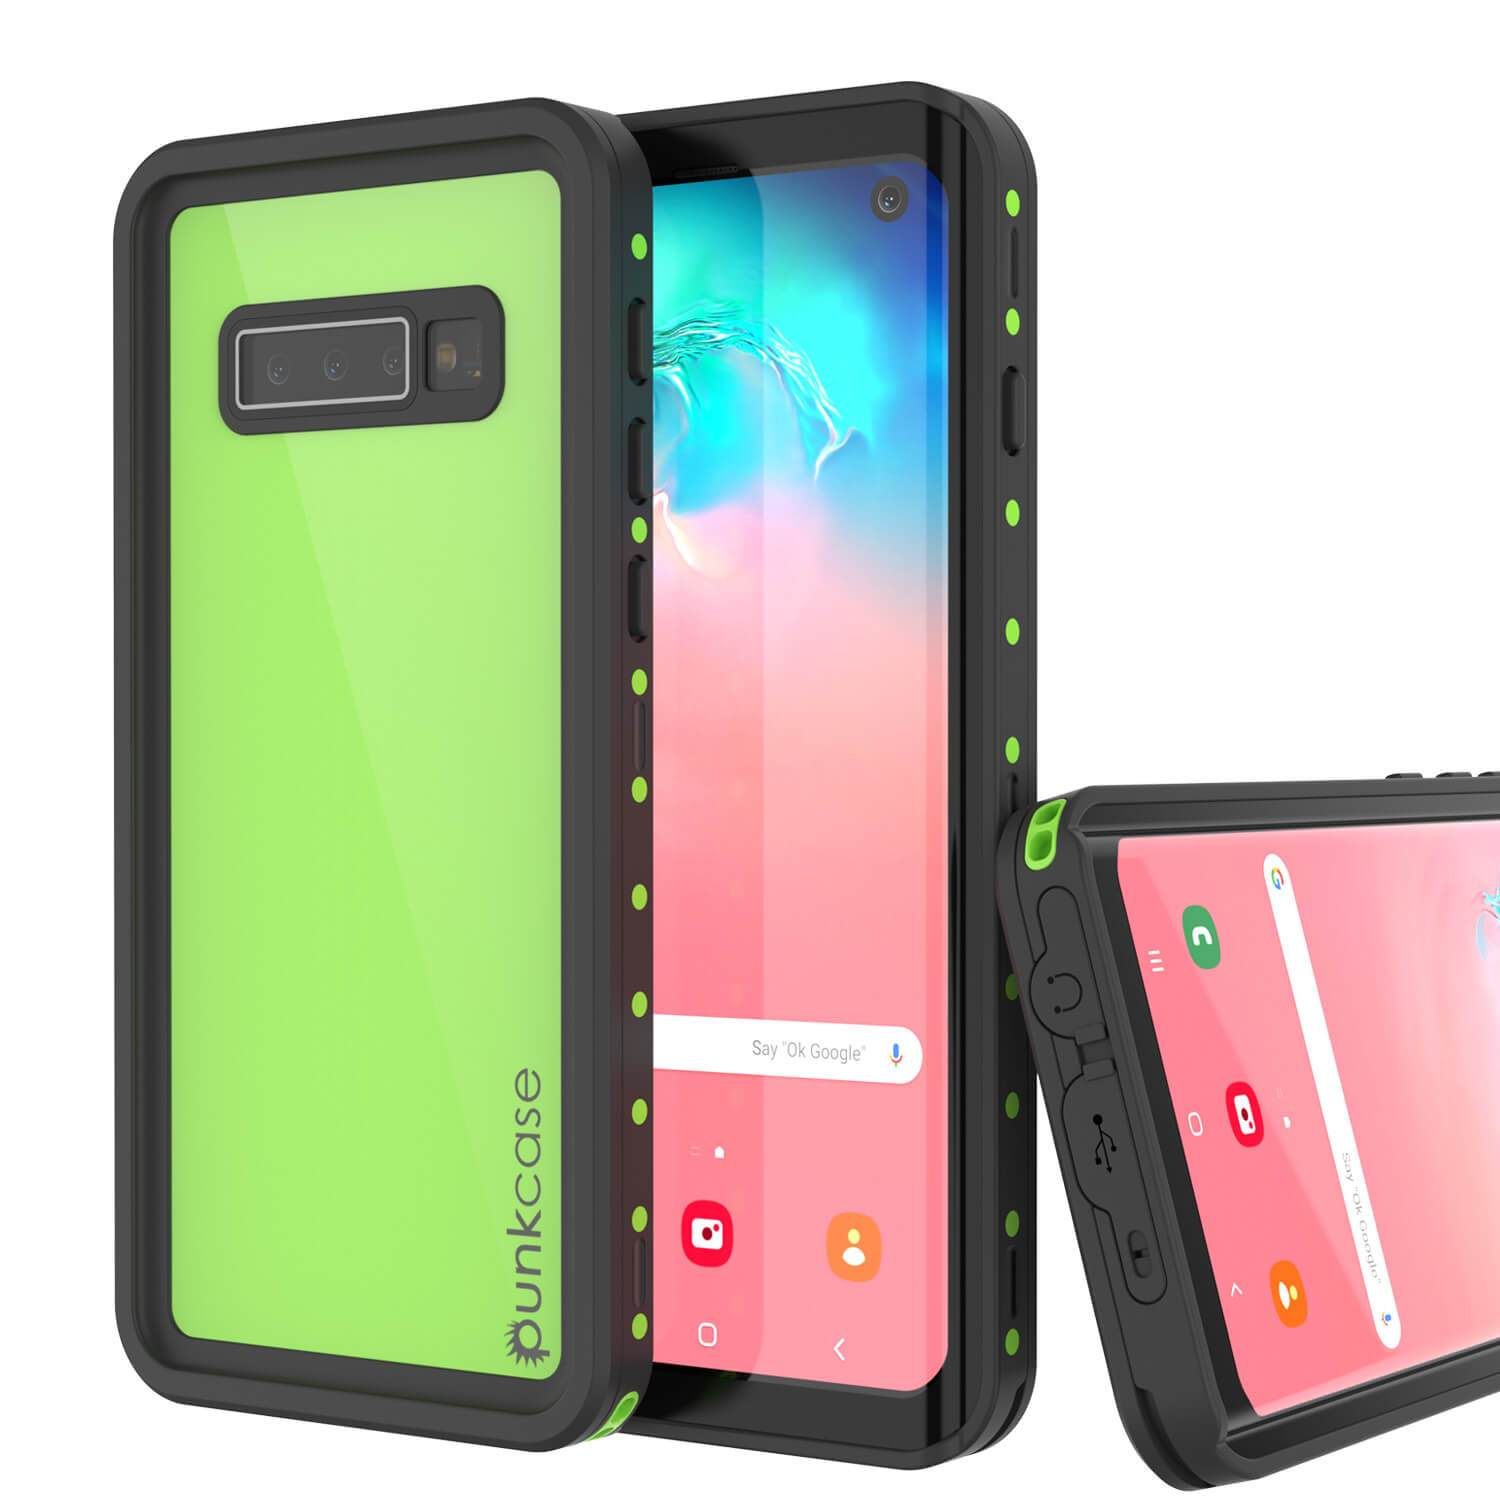 Galaxy S10 Waterproof Case PunkCase StudStar Light Green Thin 6.6ft Underwater IP68 ShockProof